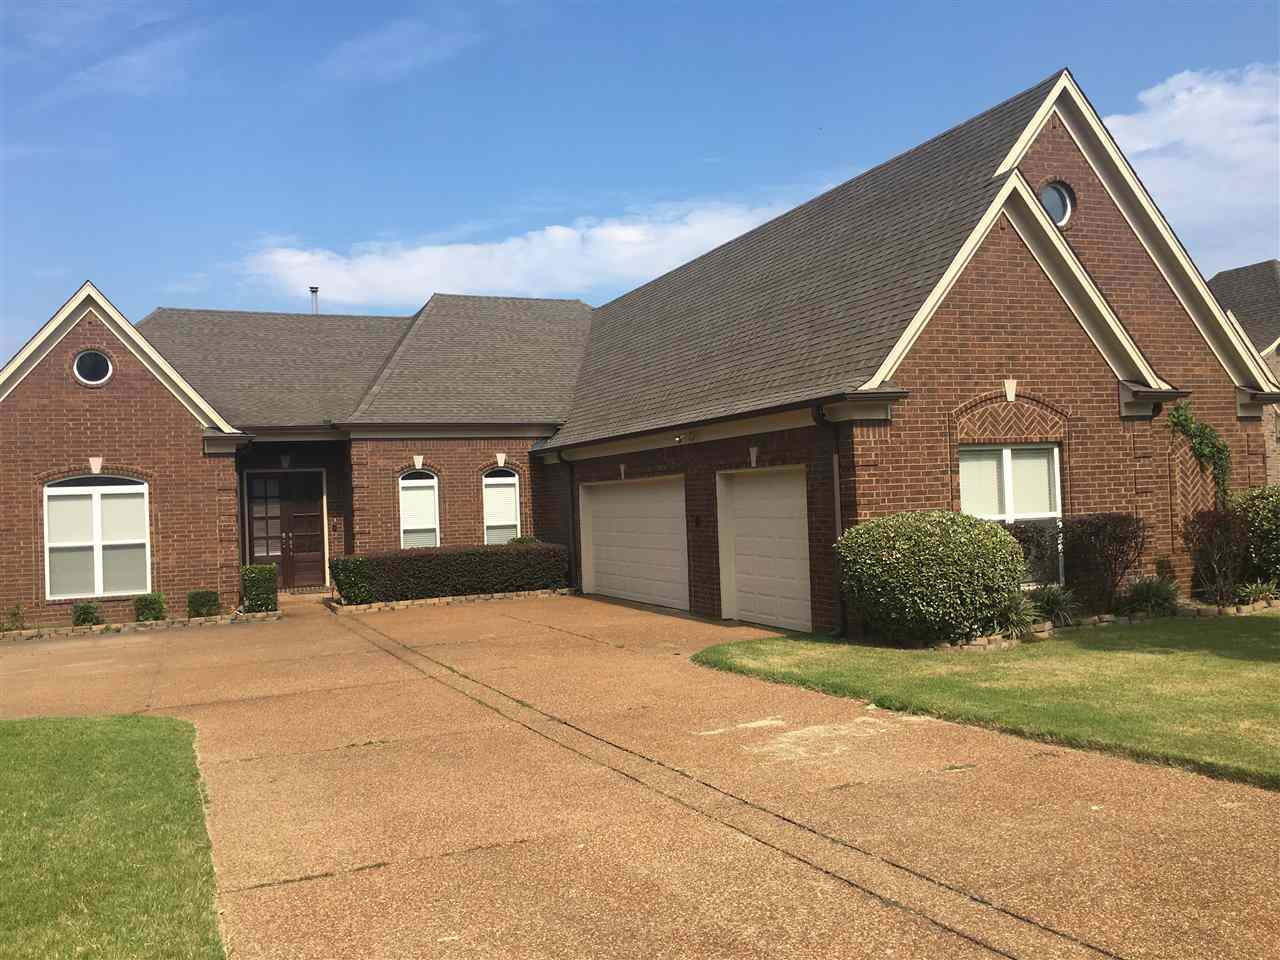 4705 Ravencrest Bartlett, TN 38135 - MLS #: 9986076